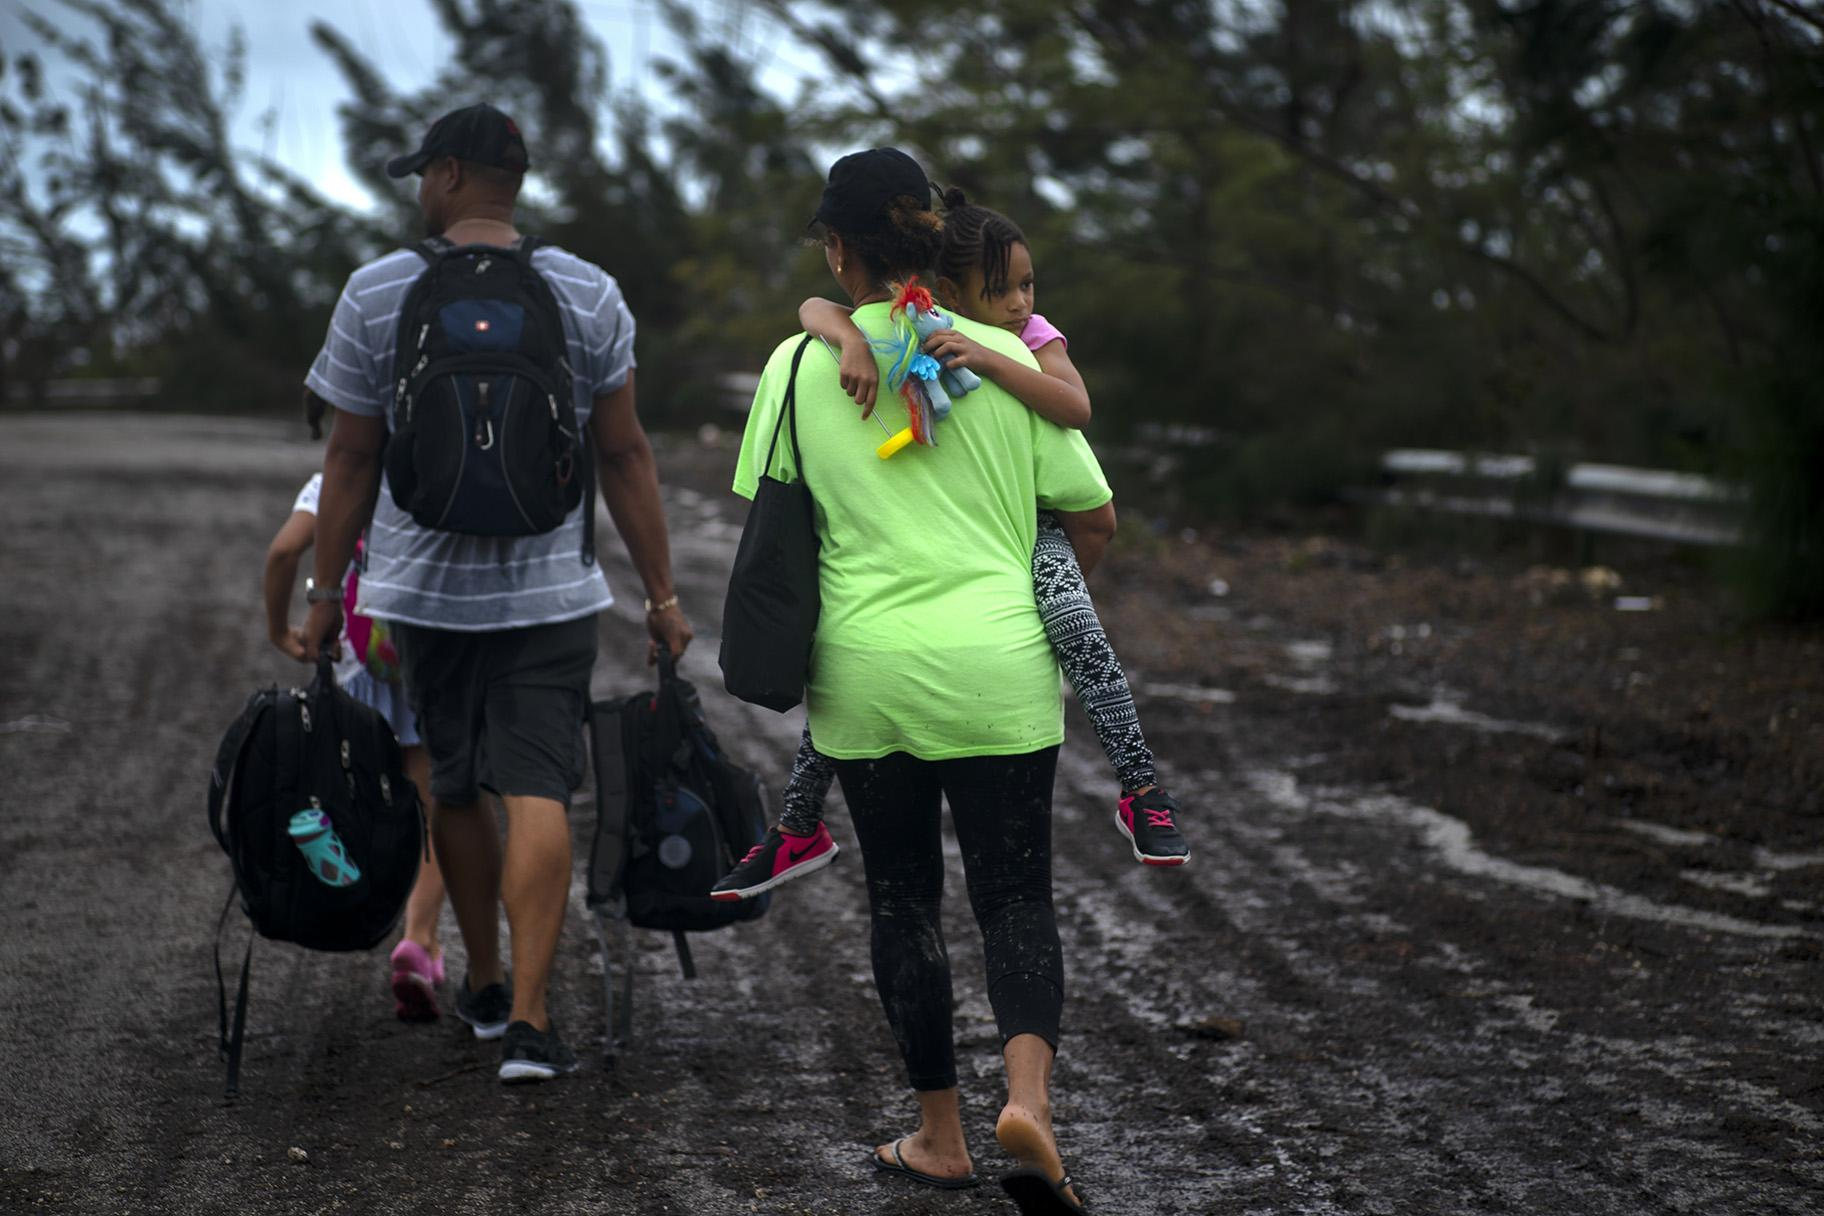 A family walks on a road after being rescued from the floodwaters of Hurricane Dorian, near Freeport, Grand Bahama, Bahamas on Tuesday Sept. 3, 2019. They were rescued by volunteers who drove a bus into the floodwaters to pick them up. (AP Photo / Ramon Espinosa)